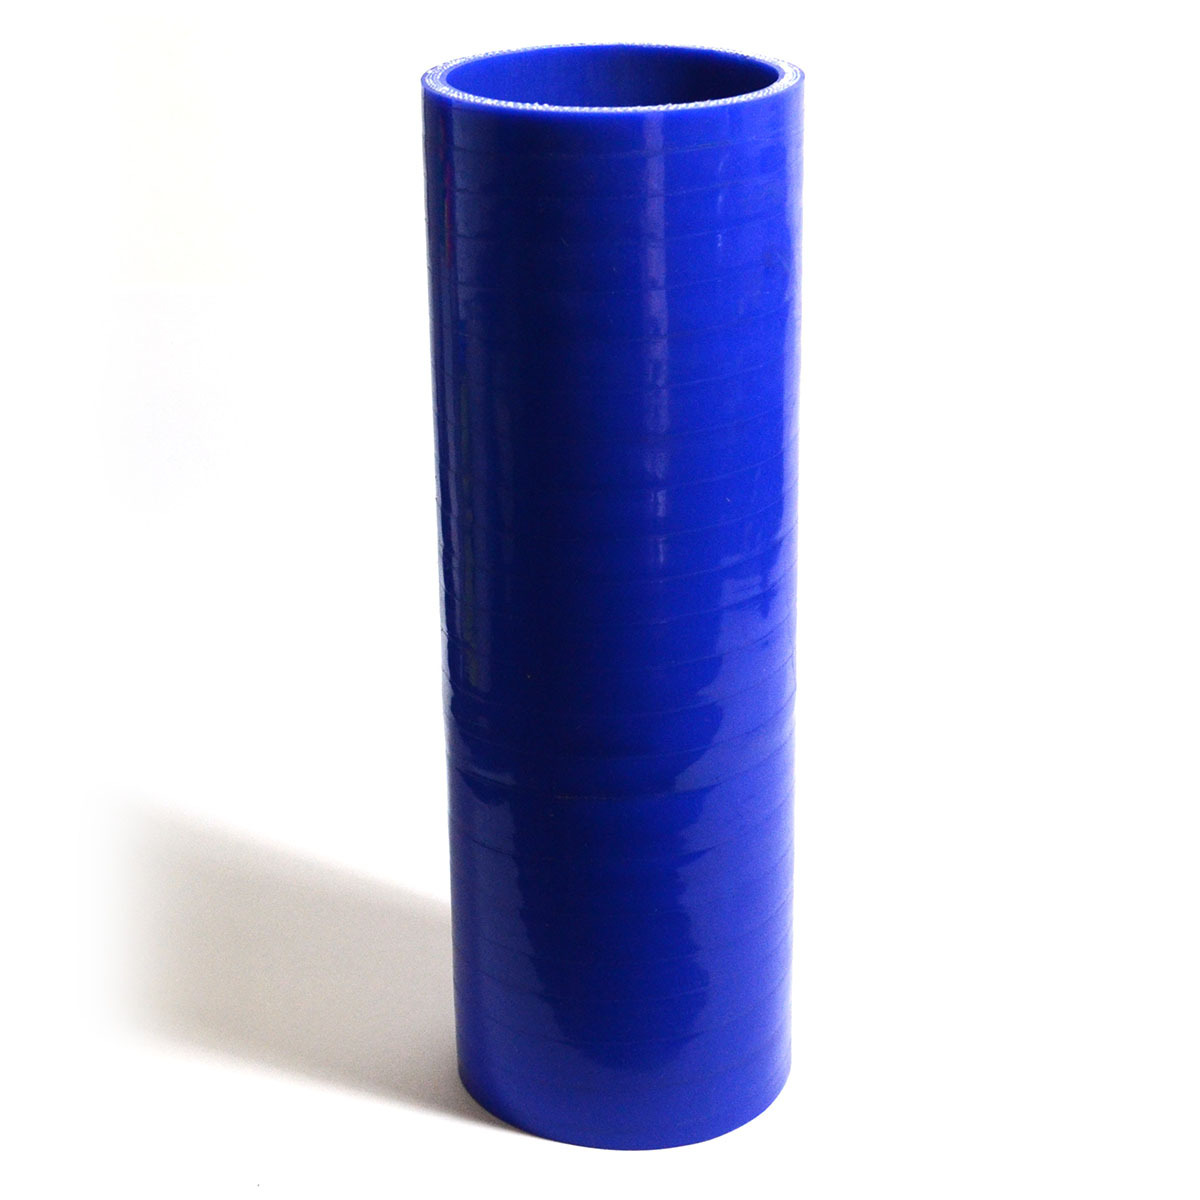 Straight 4 Ply Silicone Hose 76mm x 76mm x 254mm Blue